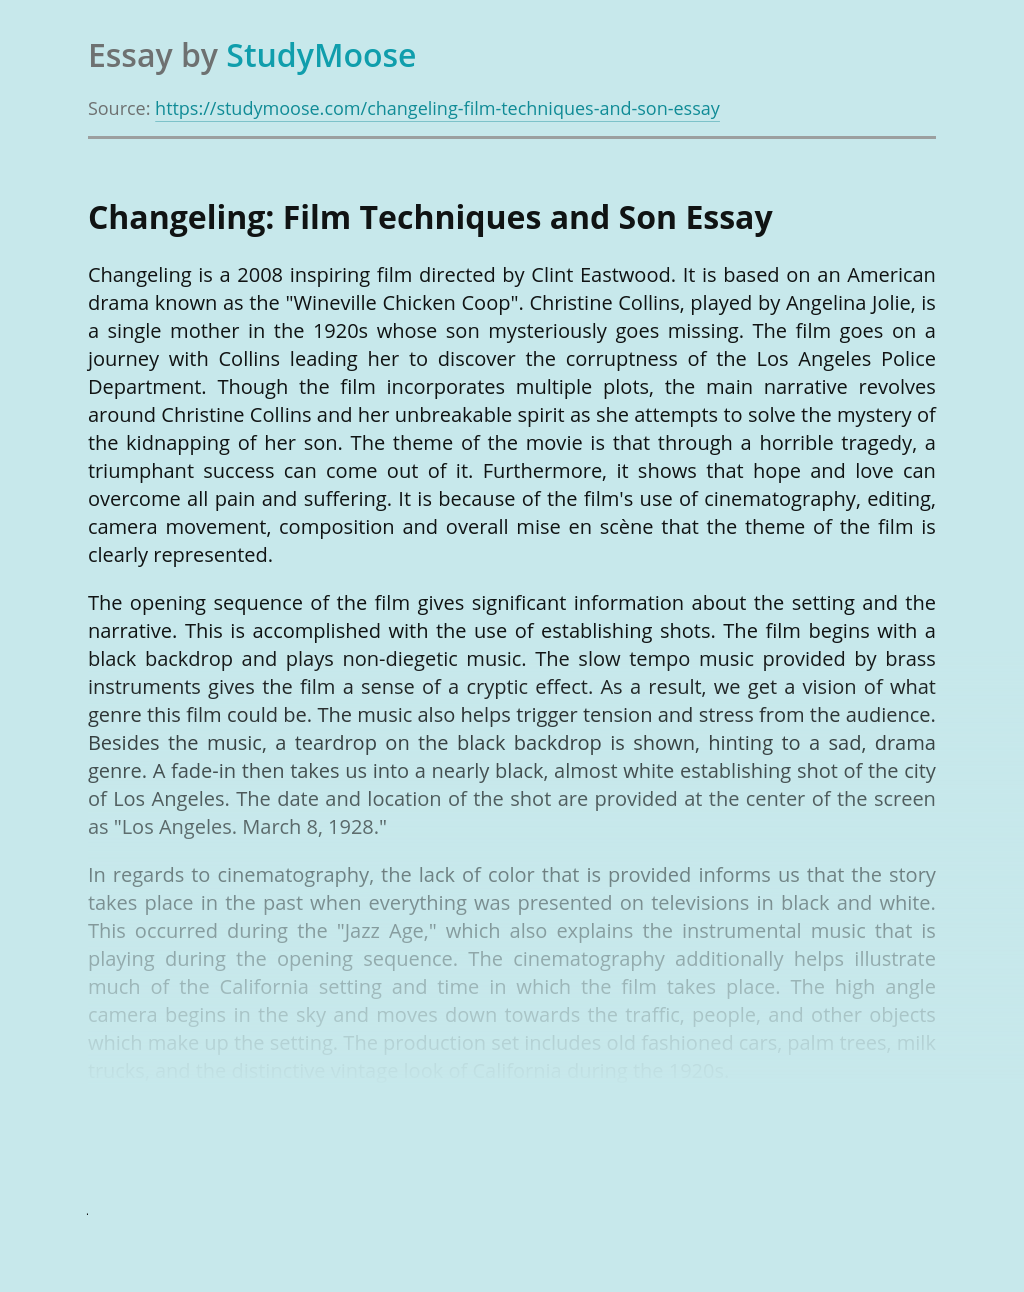 Changeling: Film Techniques and Son